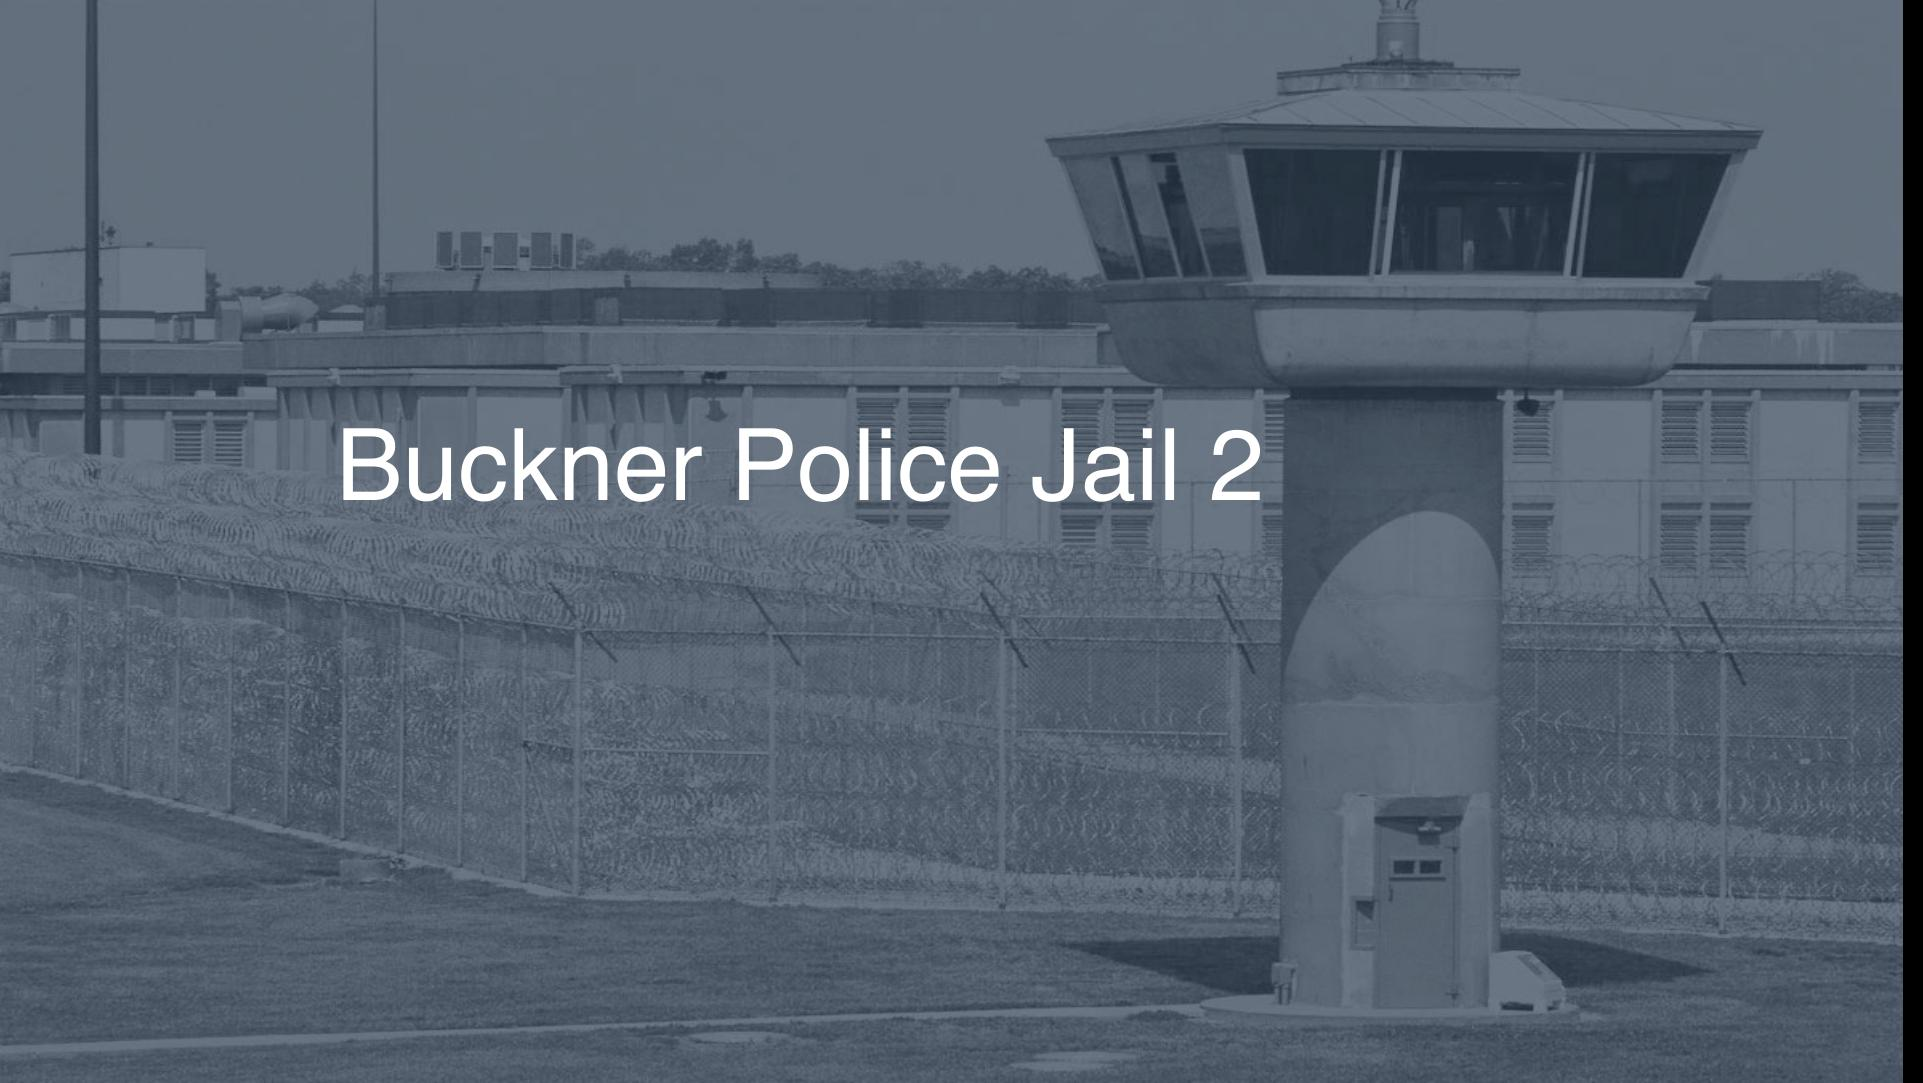 Buckner Police Jail correctional facility picture